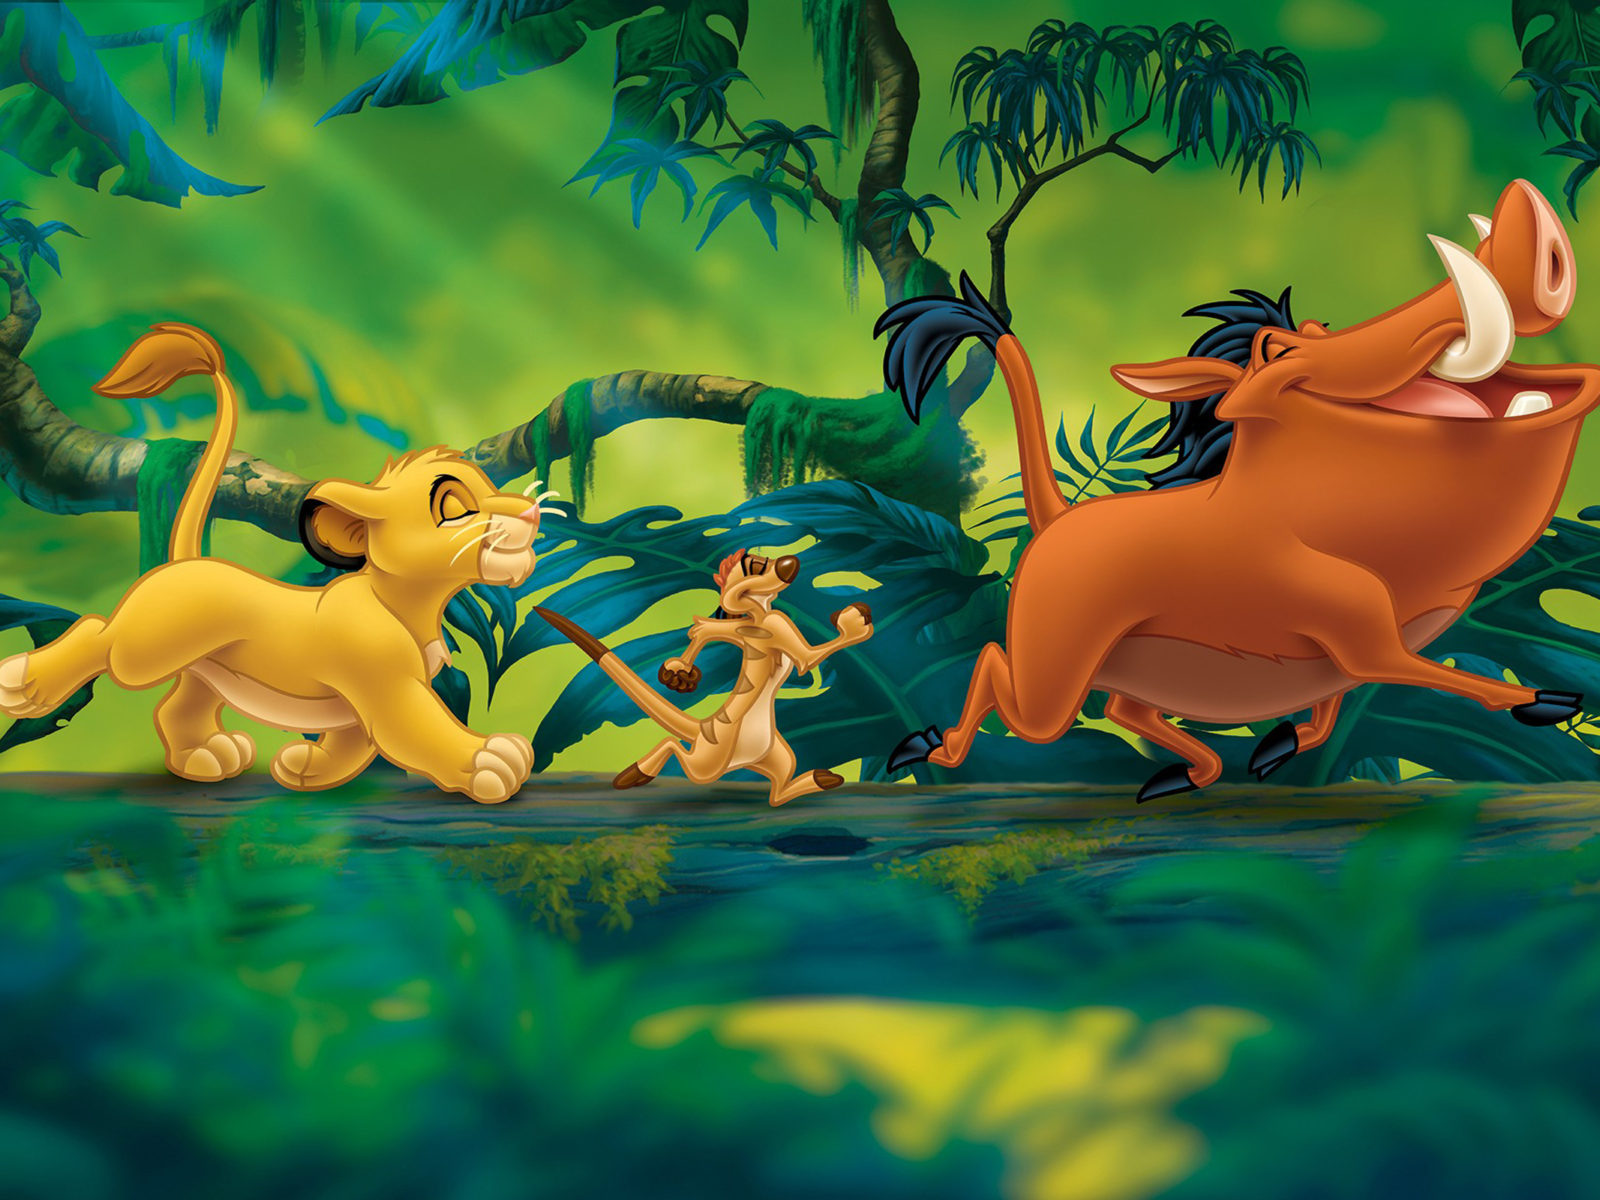 Hd Wallpaper Cars Disney The Lion King Simba Timon And Pumbaa Cartoons Disney